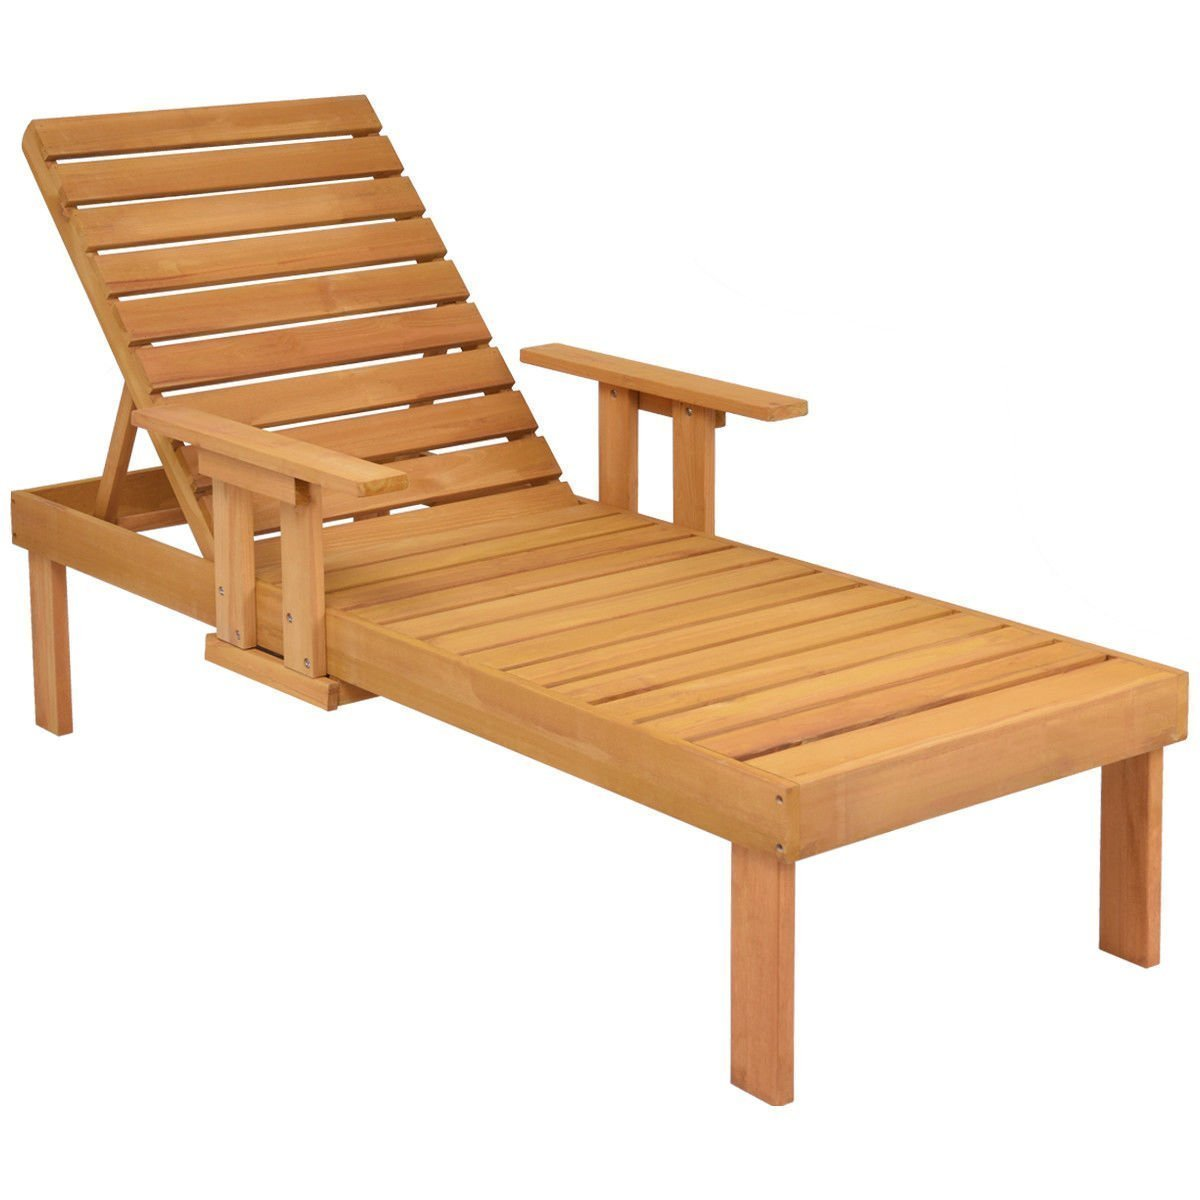 Giantex Wood Adirondack Chair Set w/Table Pull-Out Tray Wood Outdoor Patio Garden Deck Beach Chair Adjustable Backrest (Lounge Chair)